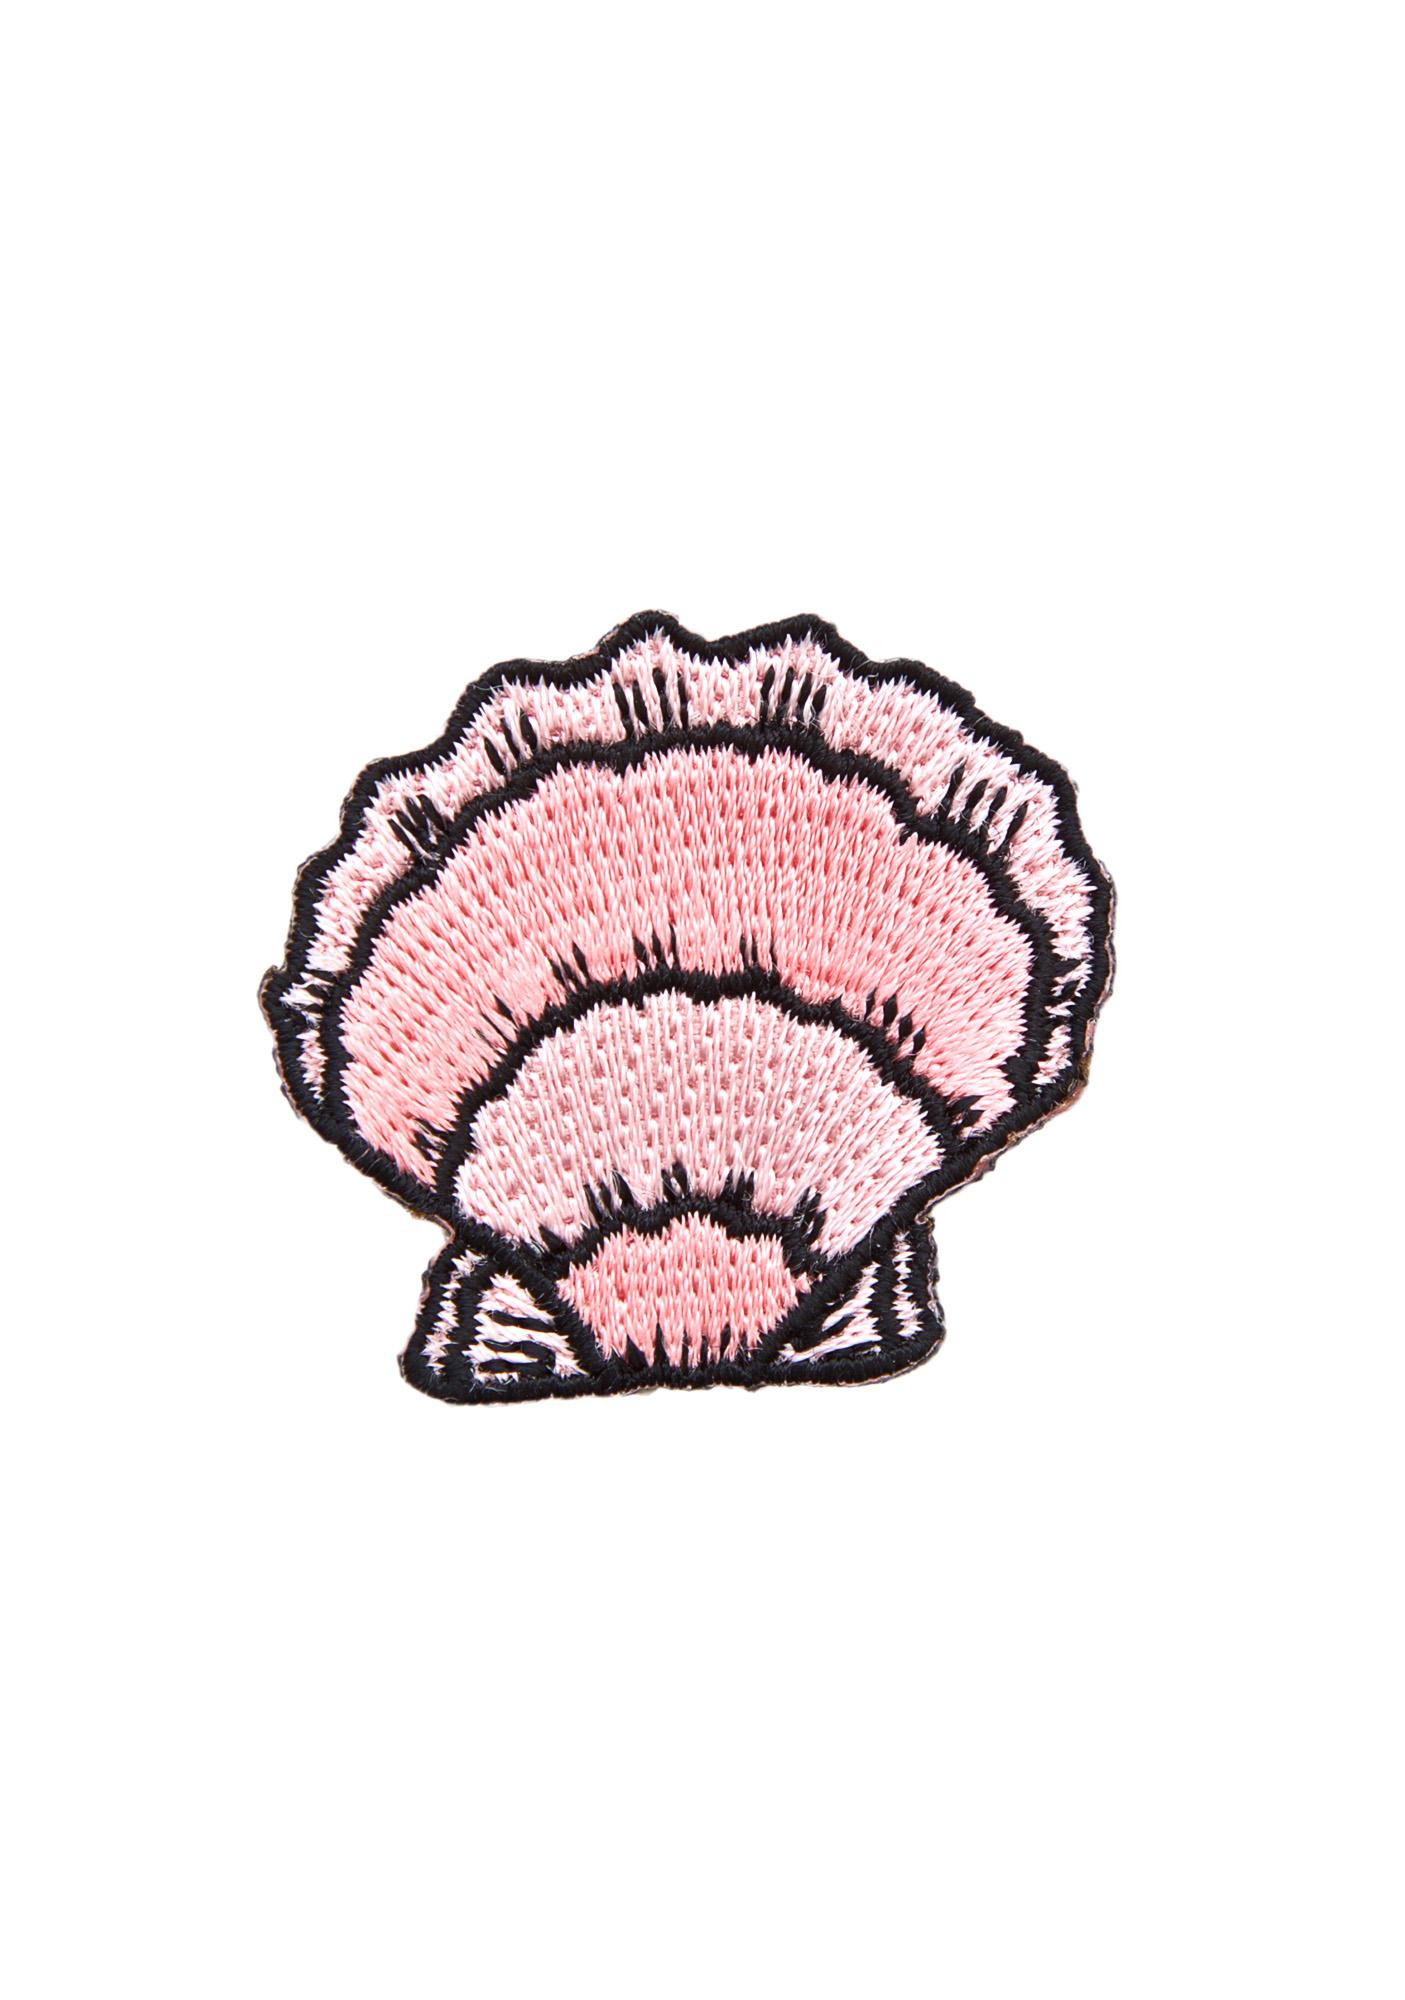 Valley Cruise Press Seashell Stick-On Patch